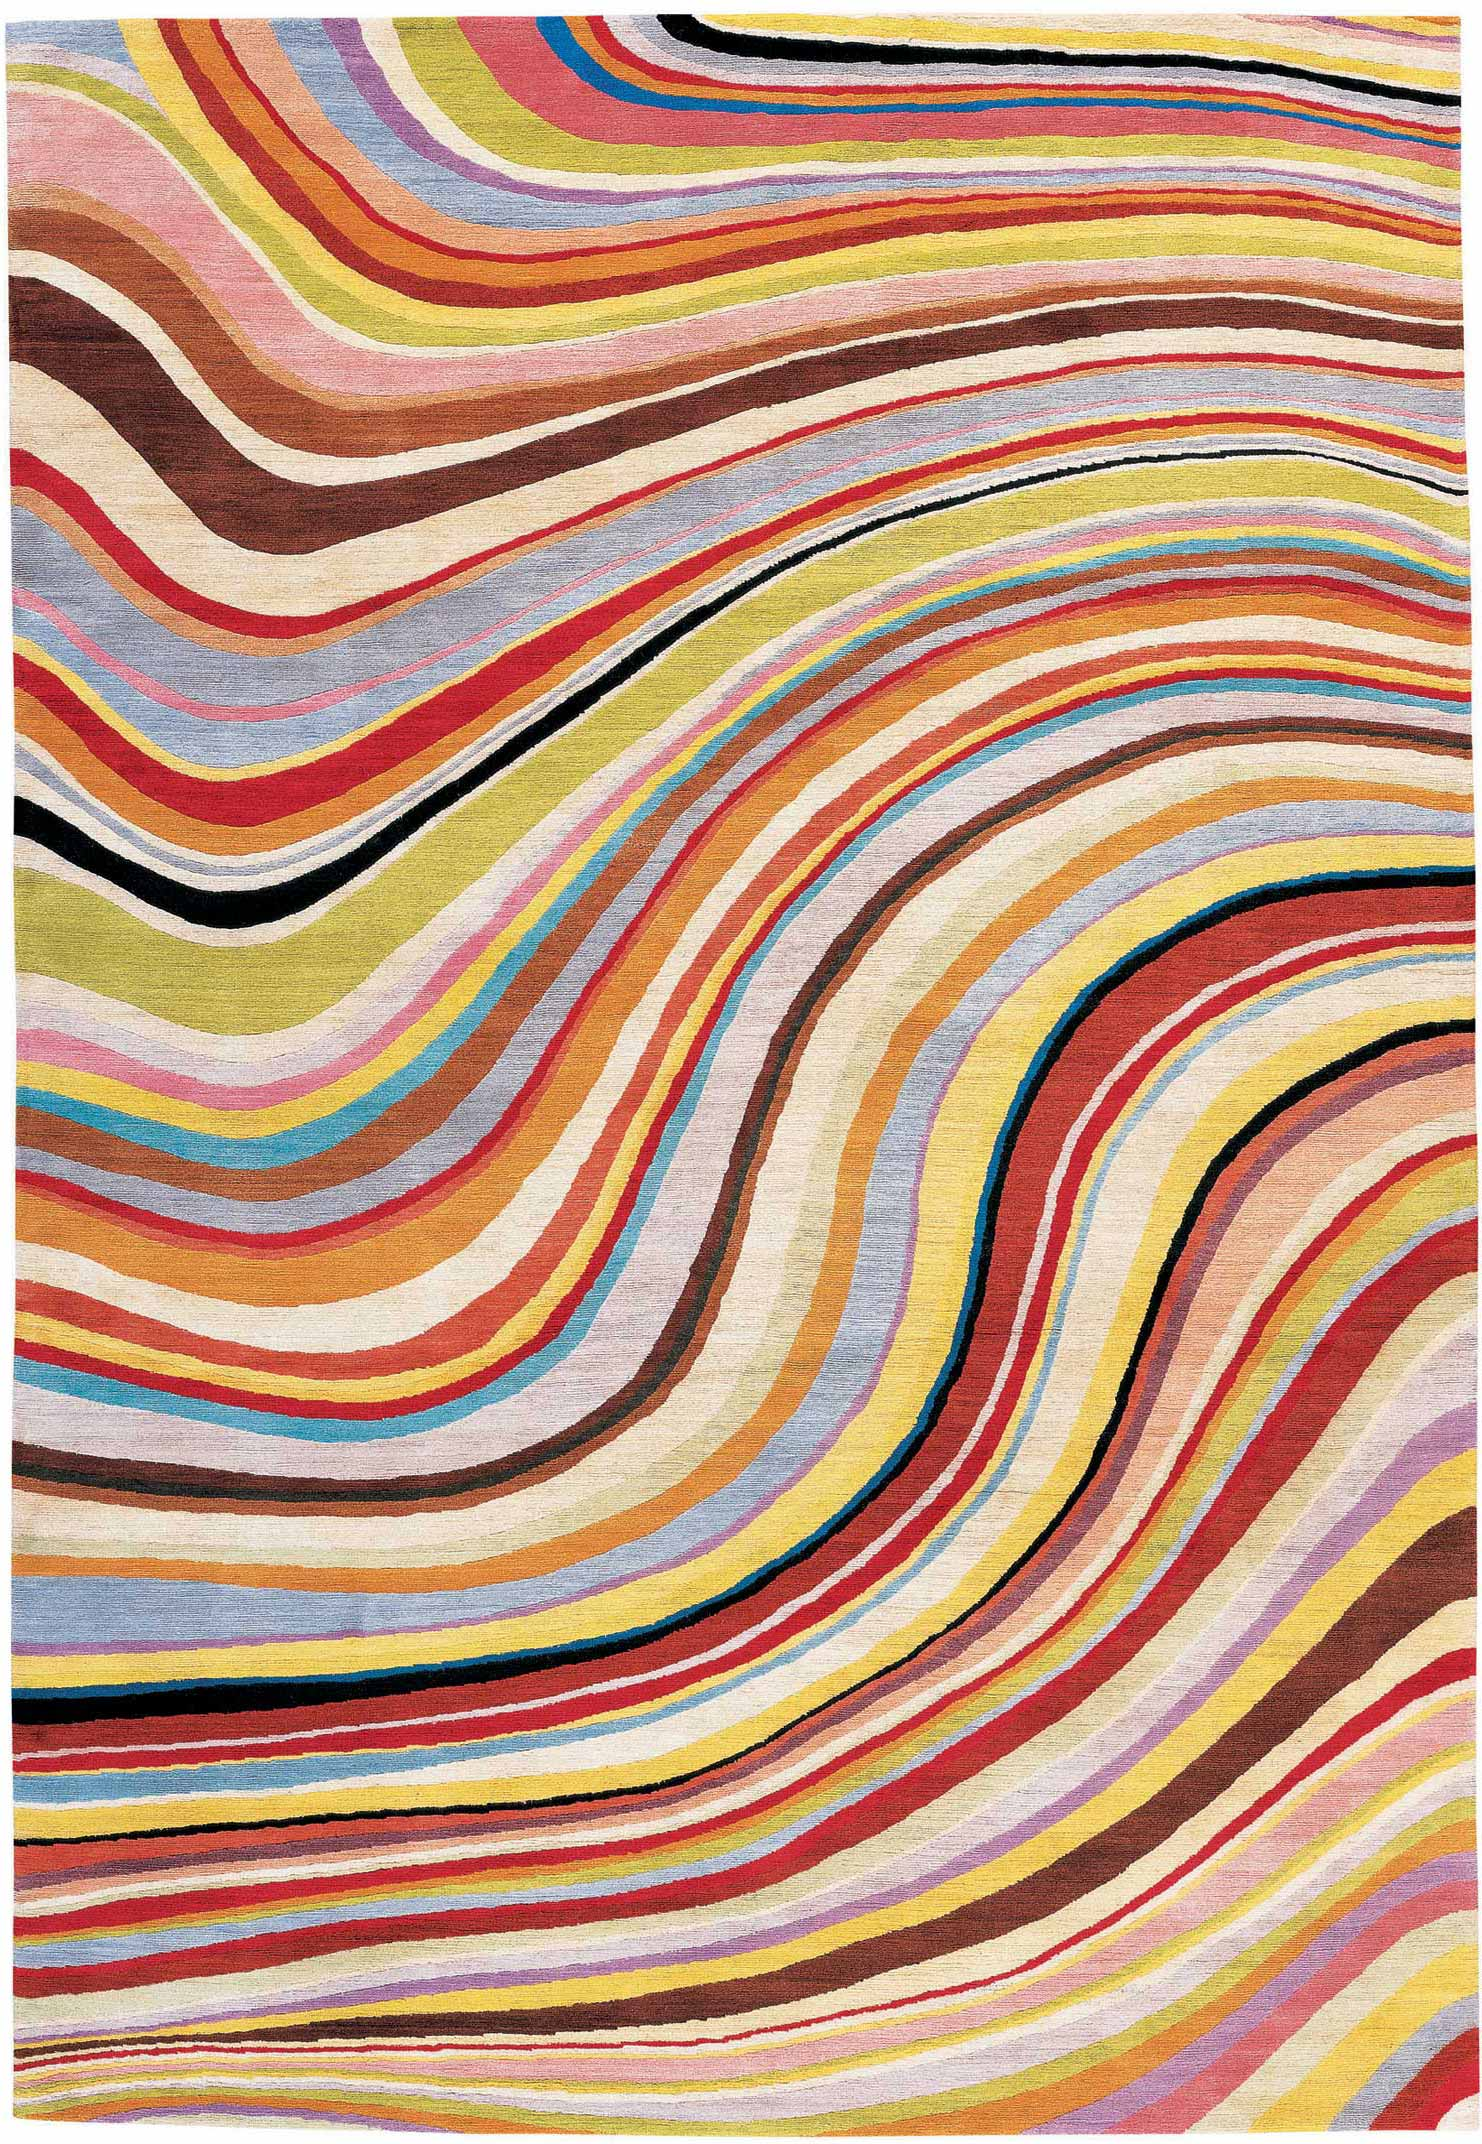 I Want A Knock Off Paul Smith Rug The Ruggist